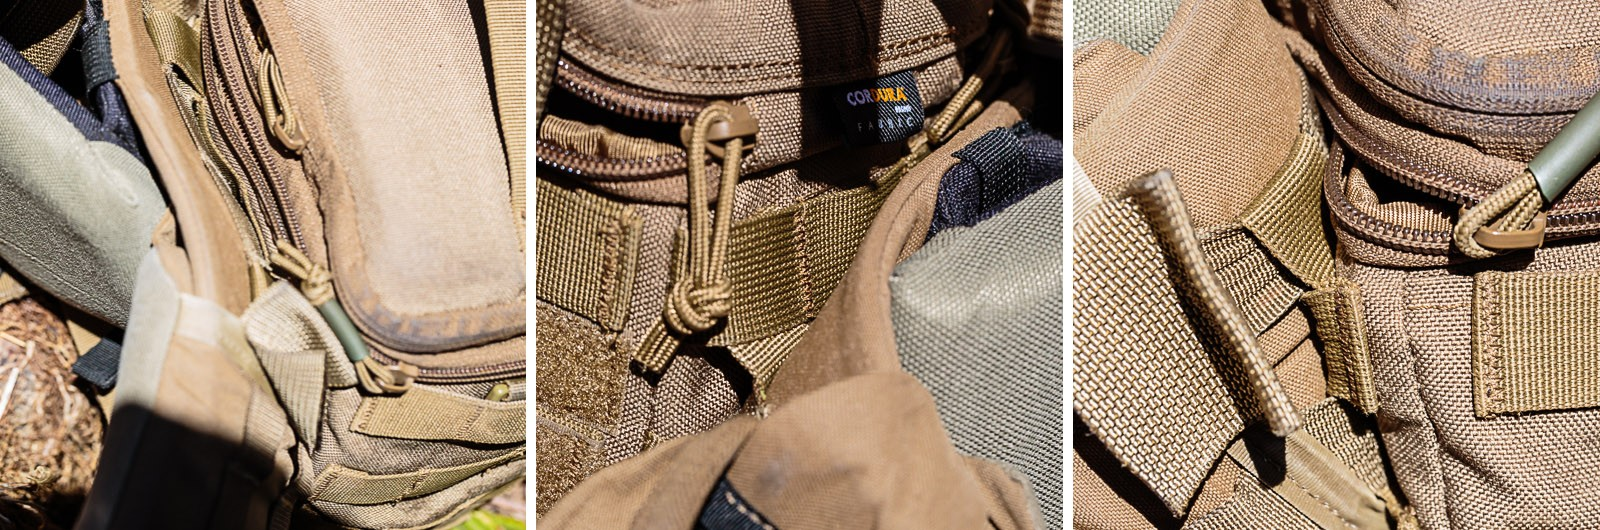 , Hazard 4 Camera Pouches – the Forward Observer & Jelly Roll